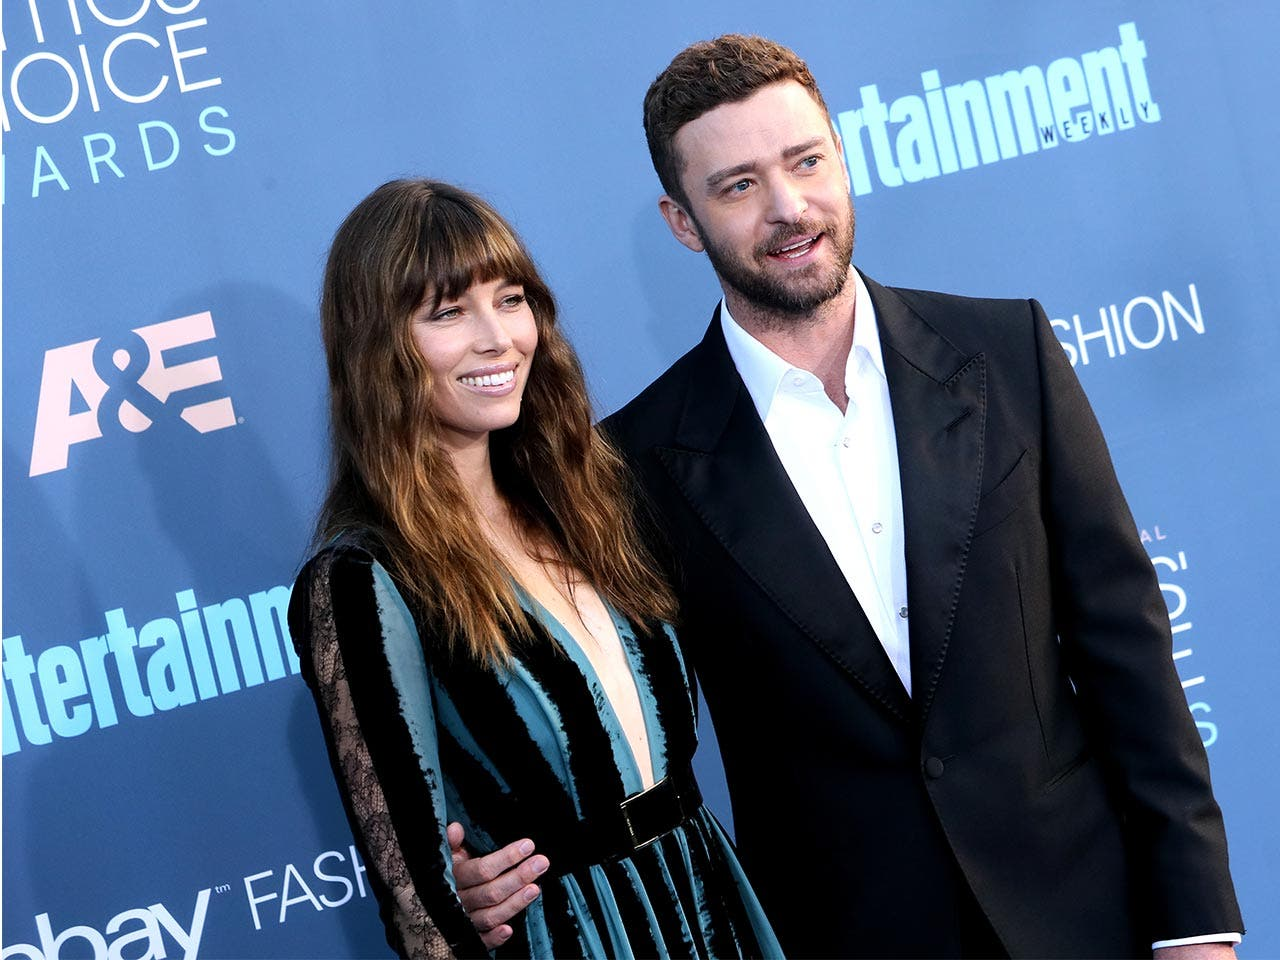 Justin Timberlake and Jessica Biel | David Livingston/Getty Images